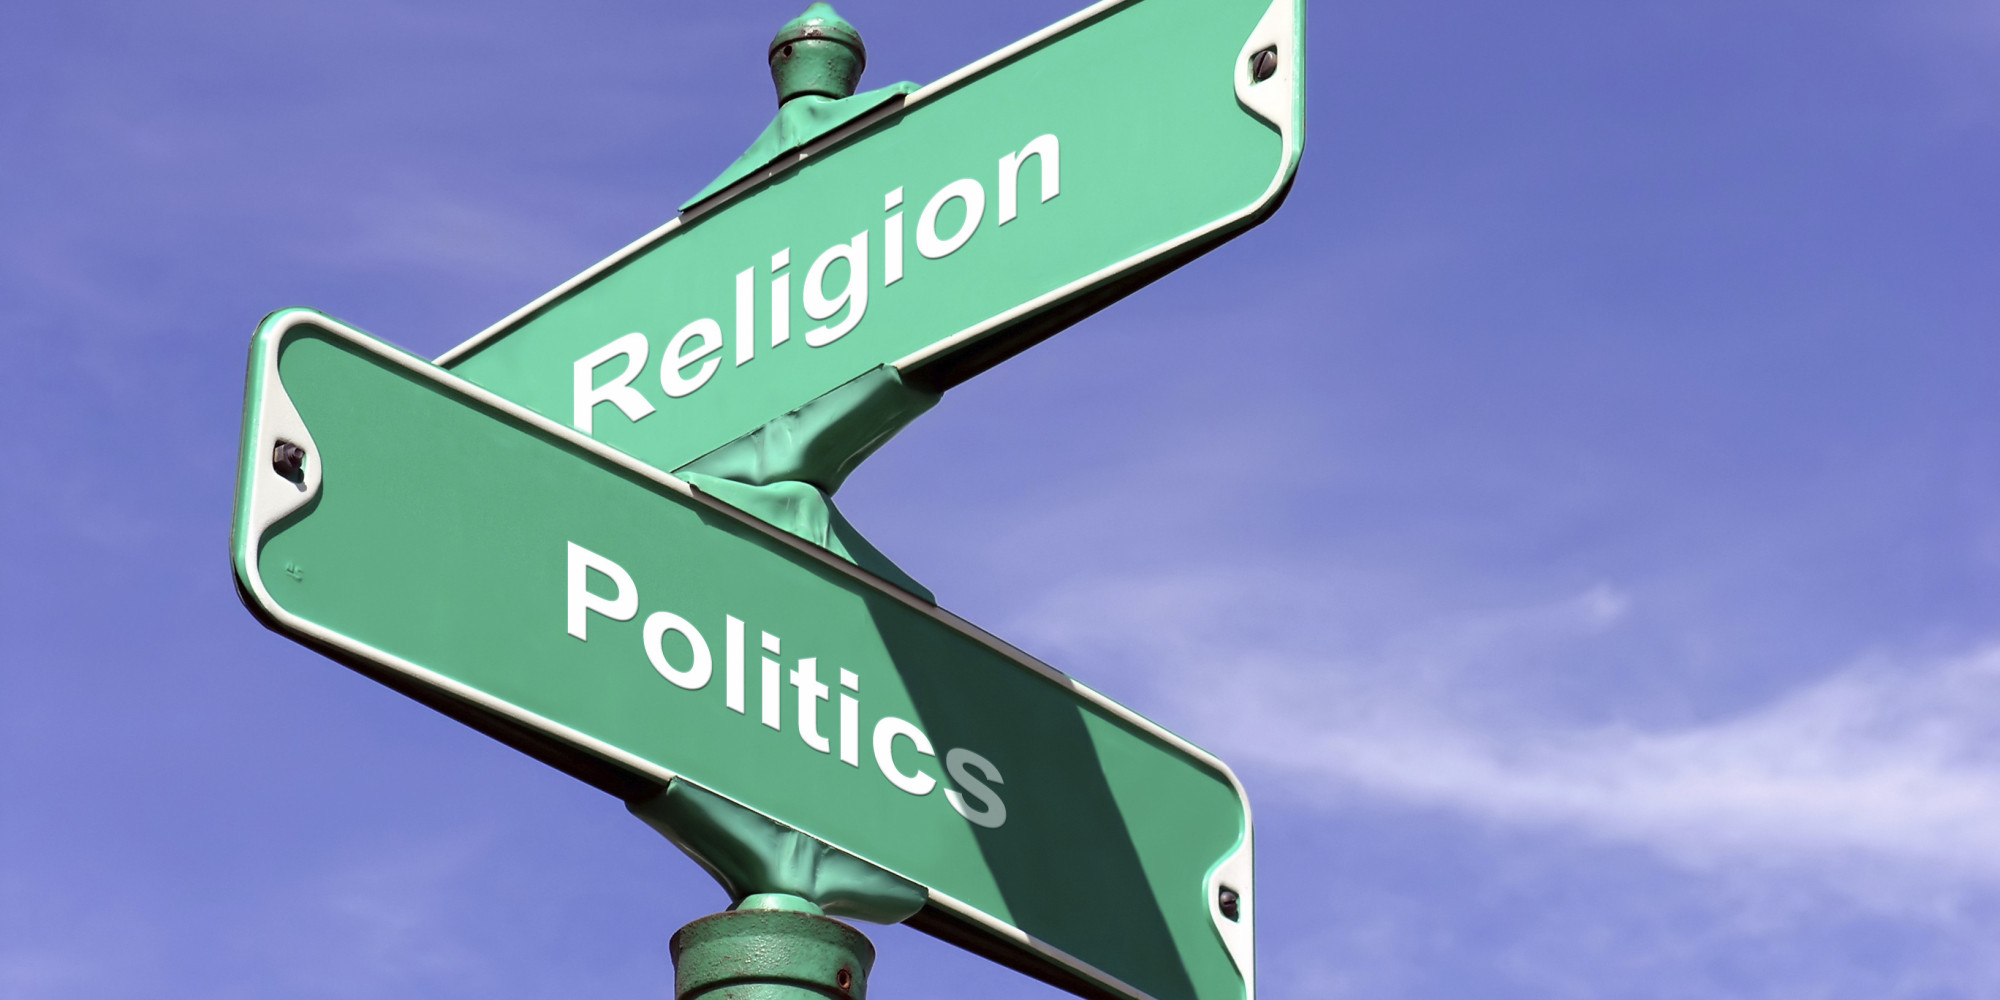 religion on politics Politics and religion is an international journal publishing high quality peer-reviewed research on the multifaceted relationship between religion and politics around the world.